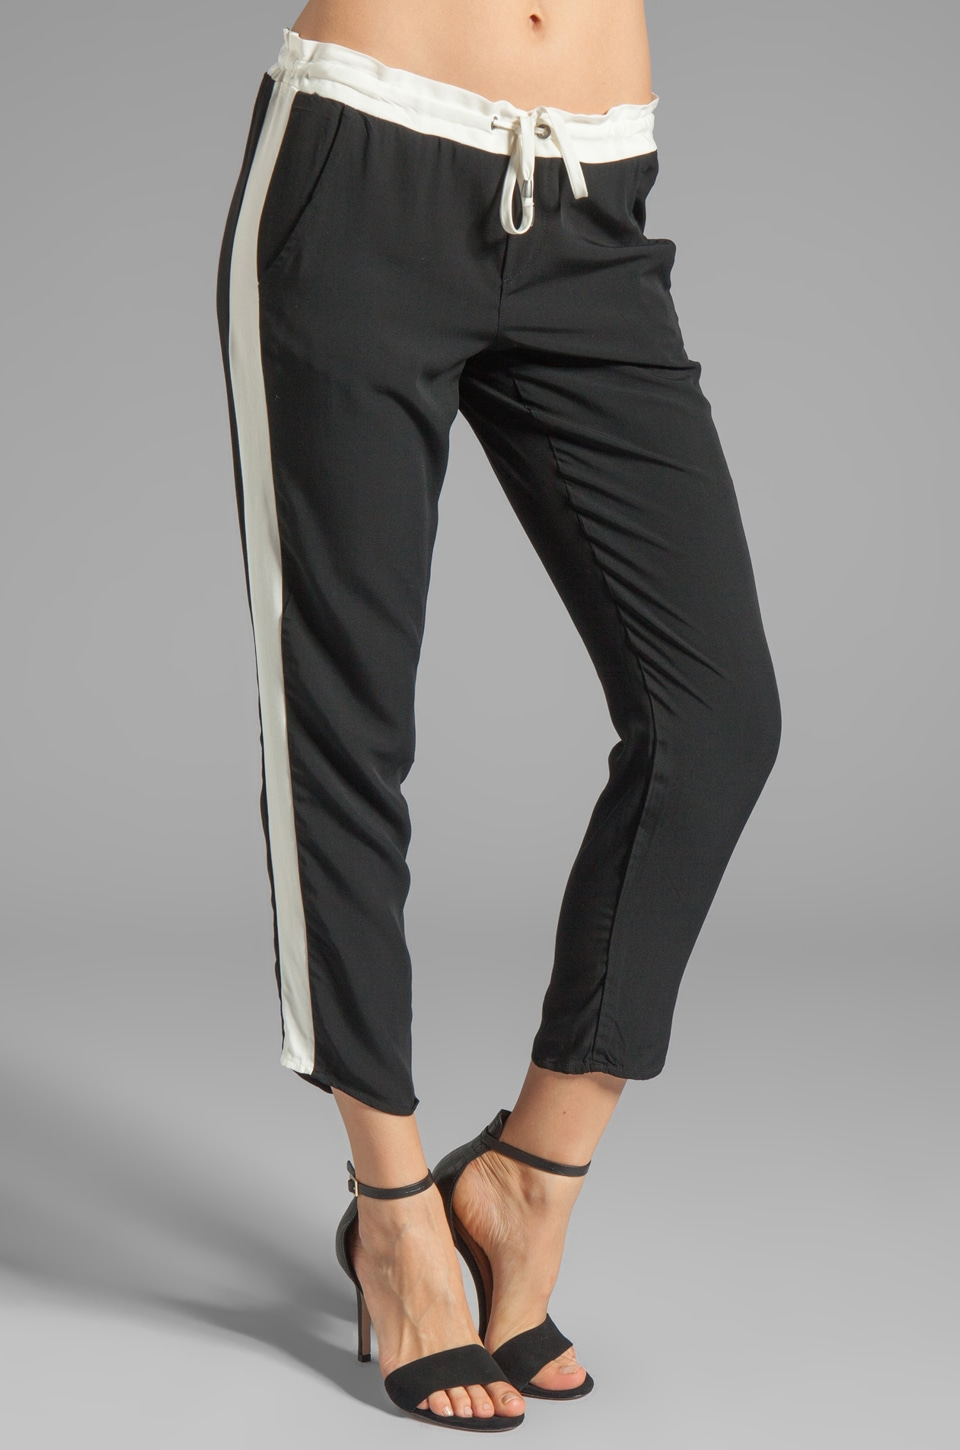 Splendid Athens Colorblocked Pant in Black/Sand Dollar